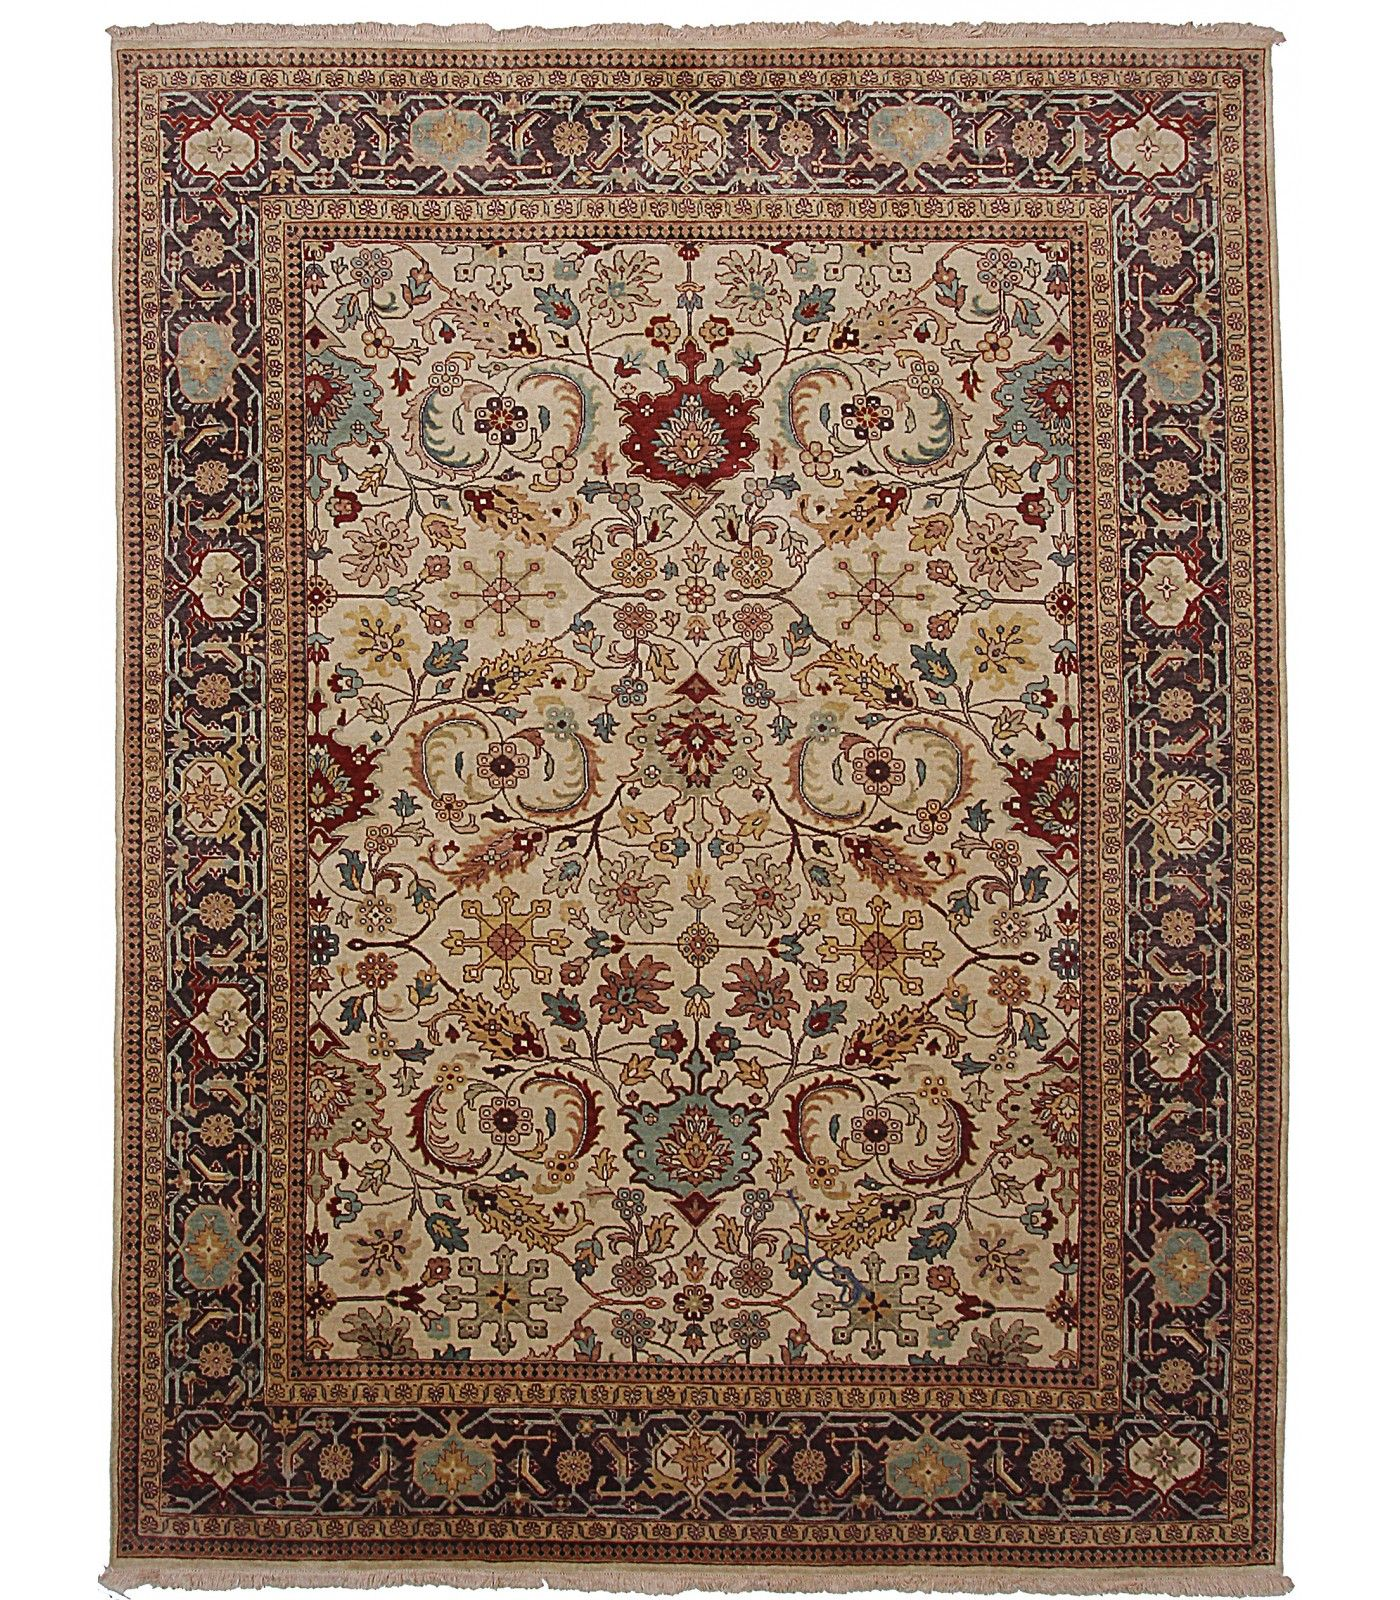 Indian Rugs, Rugs, Indian